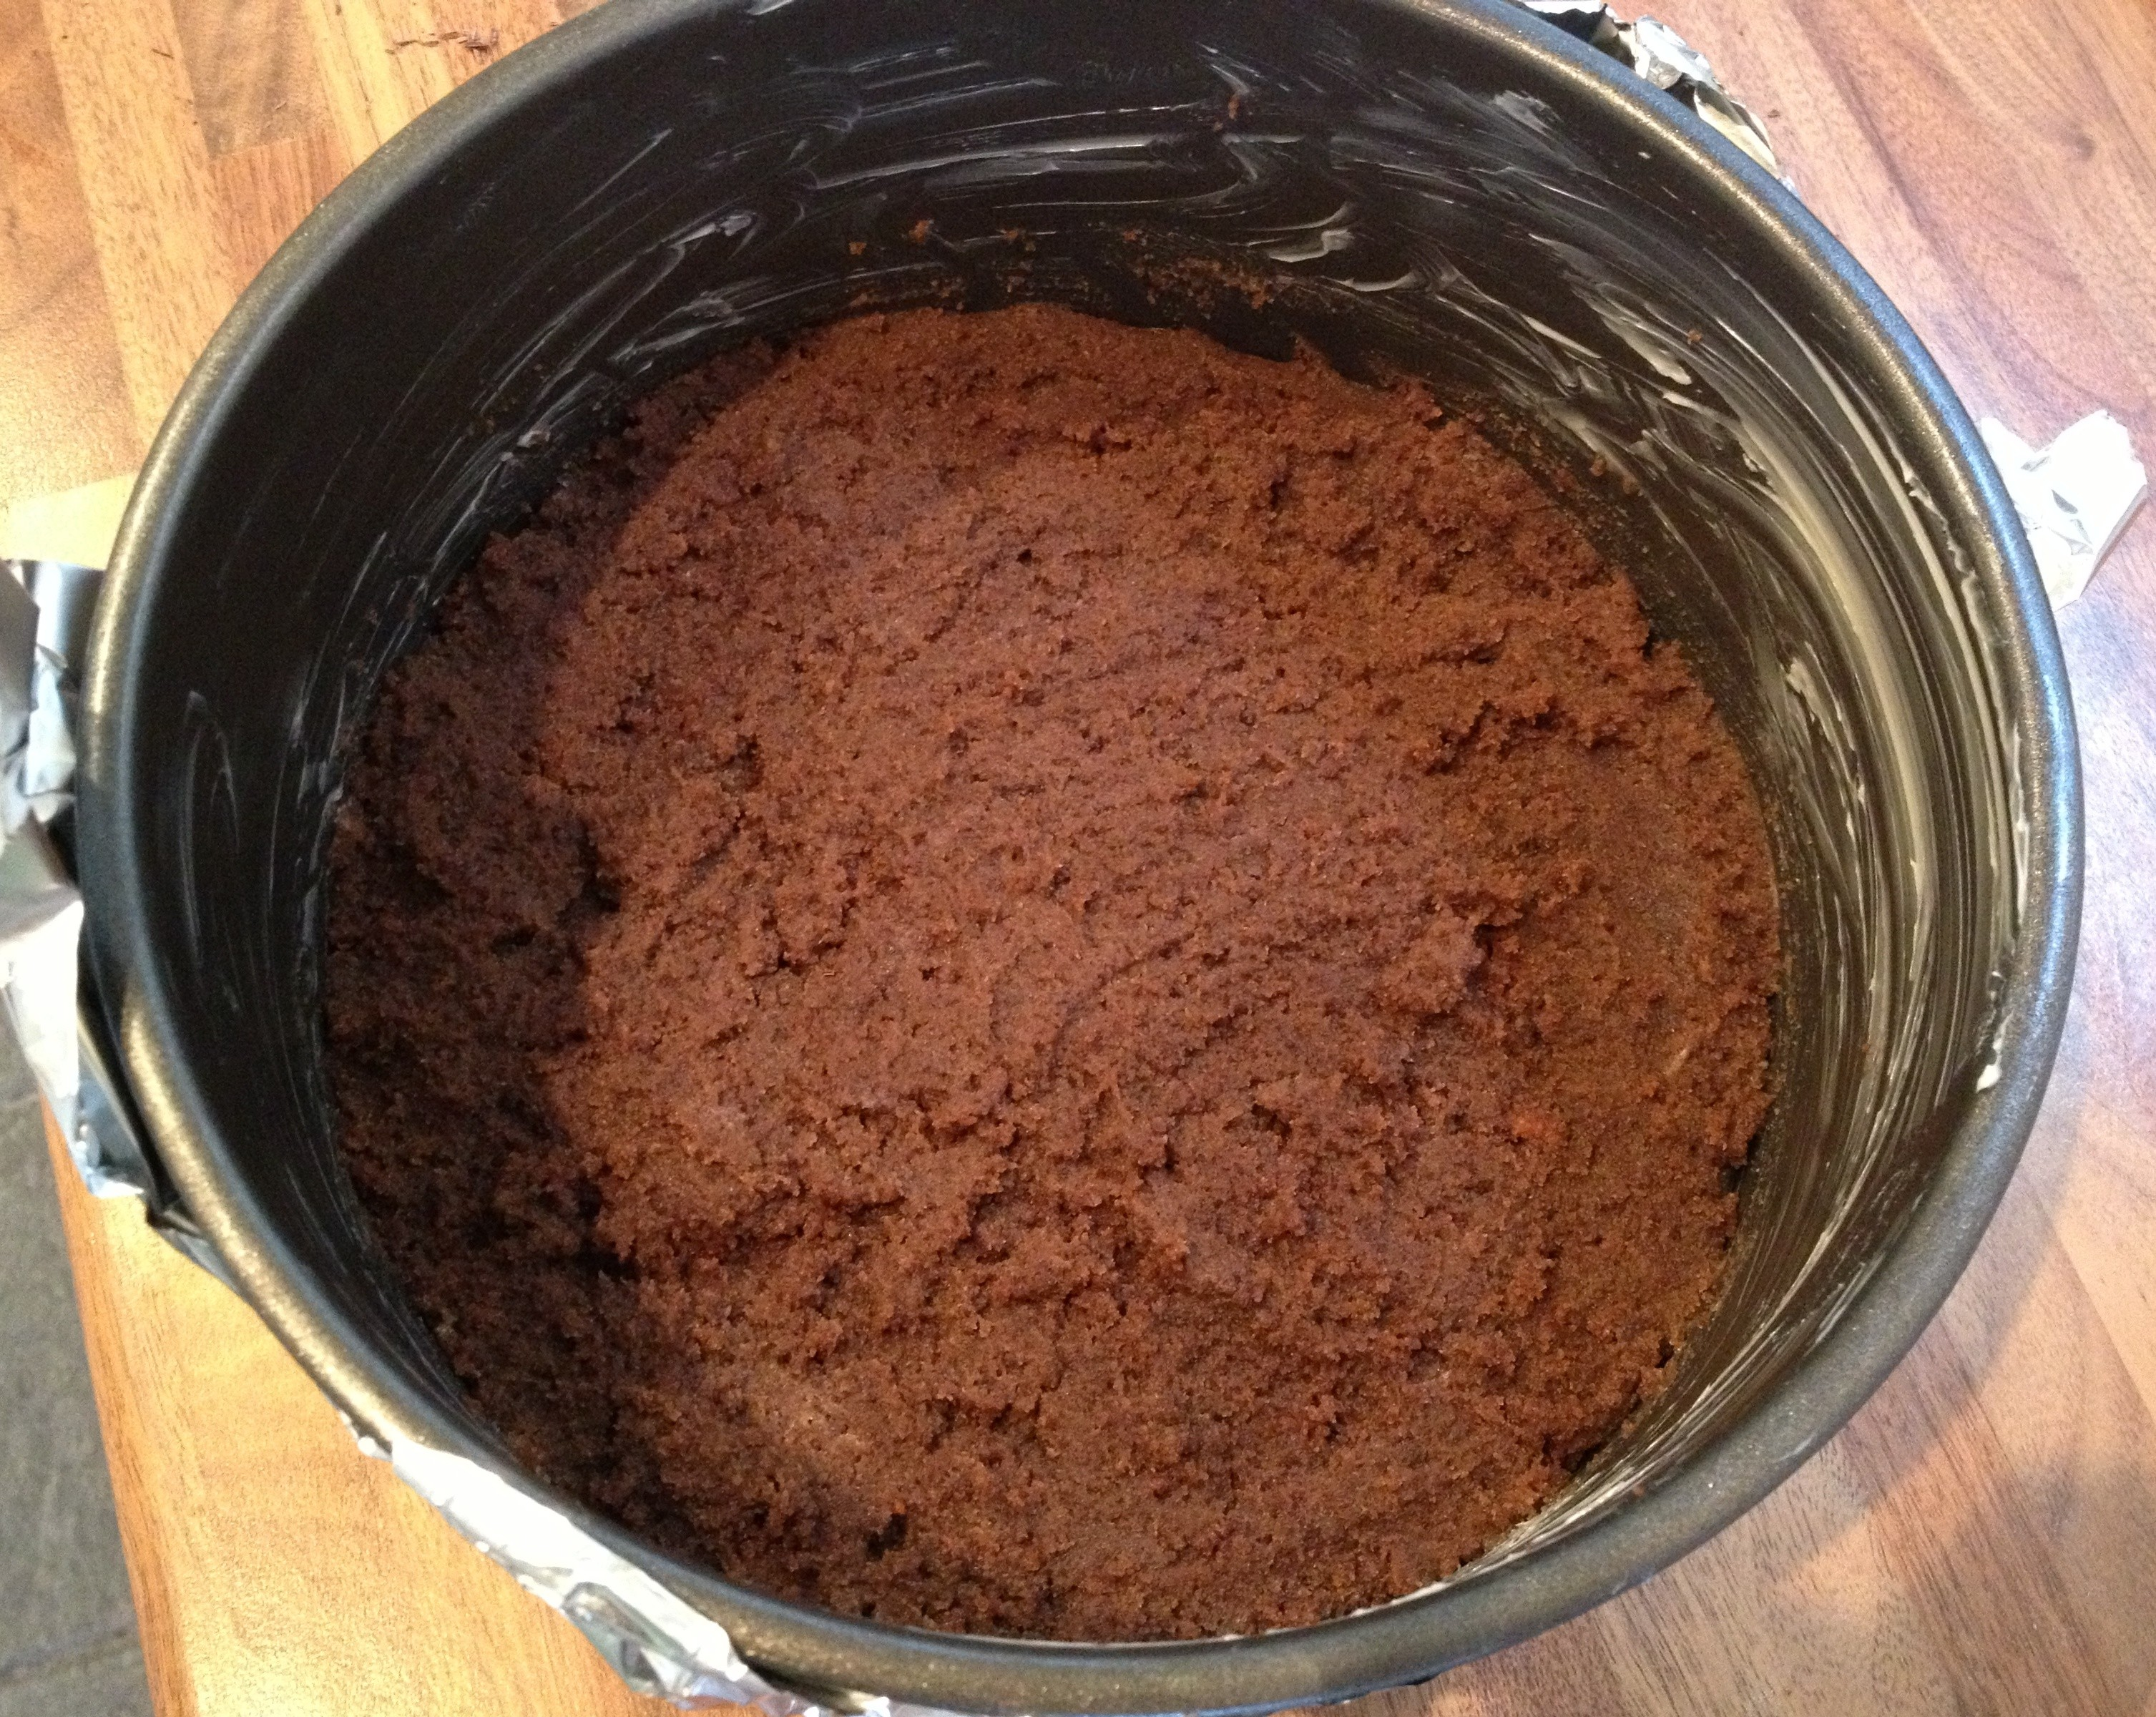 How To Perfectly Level Cake Mix In Tin